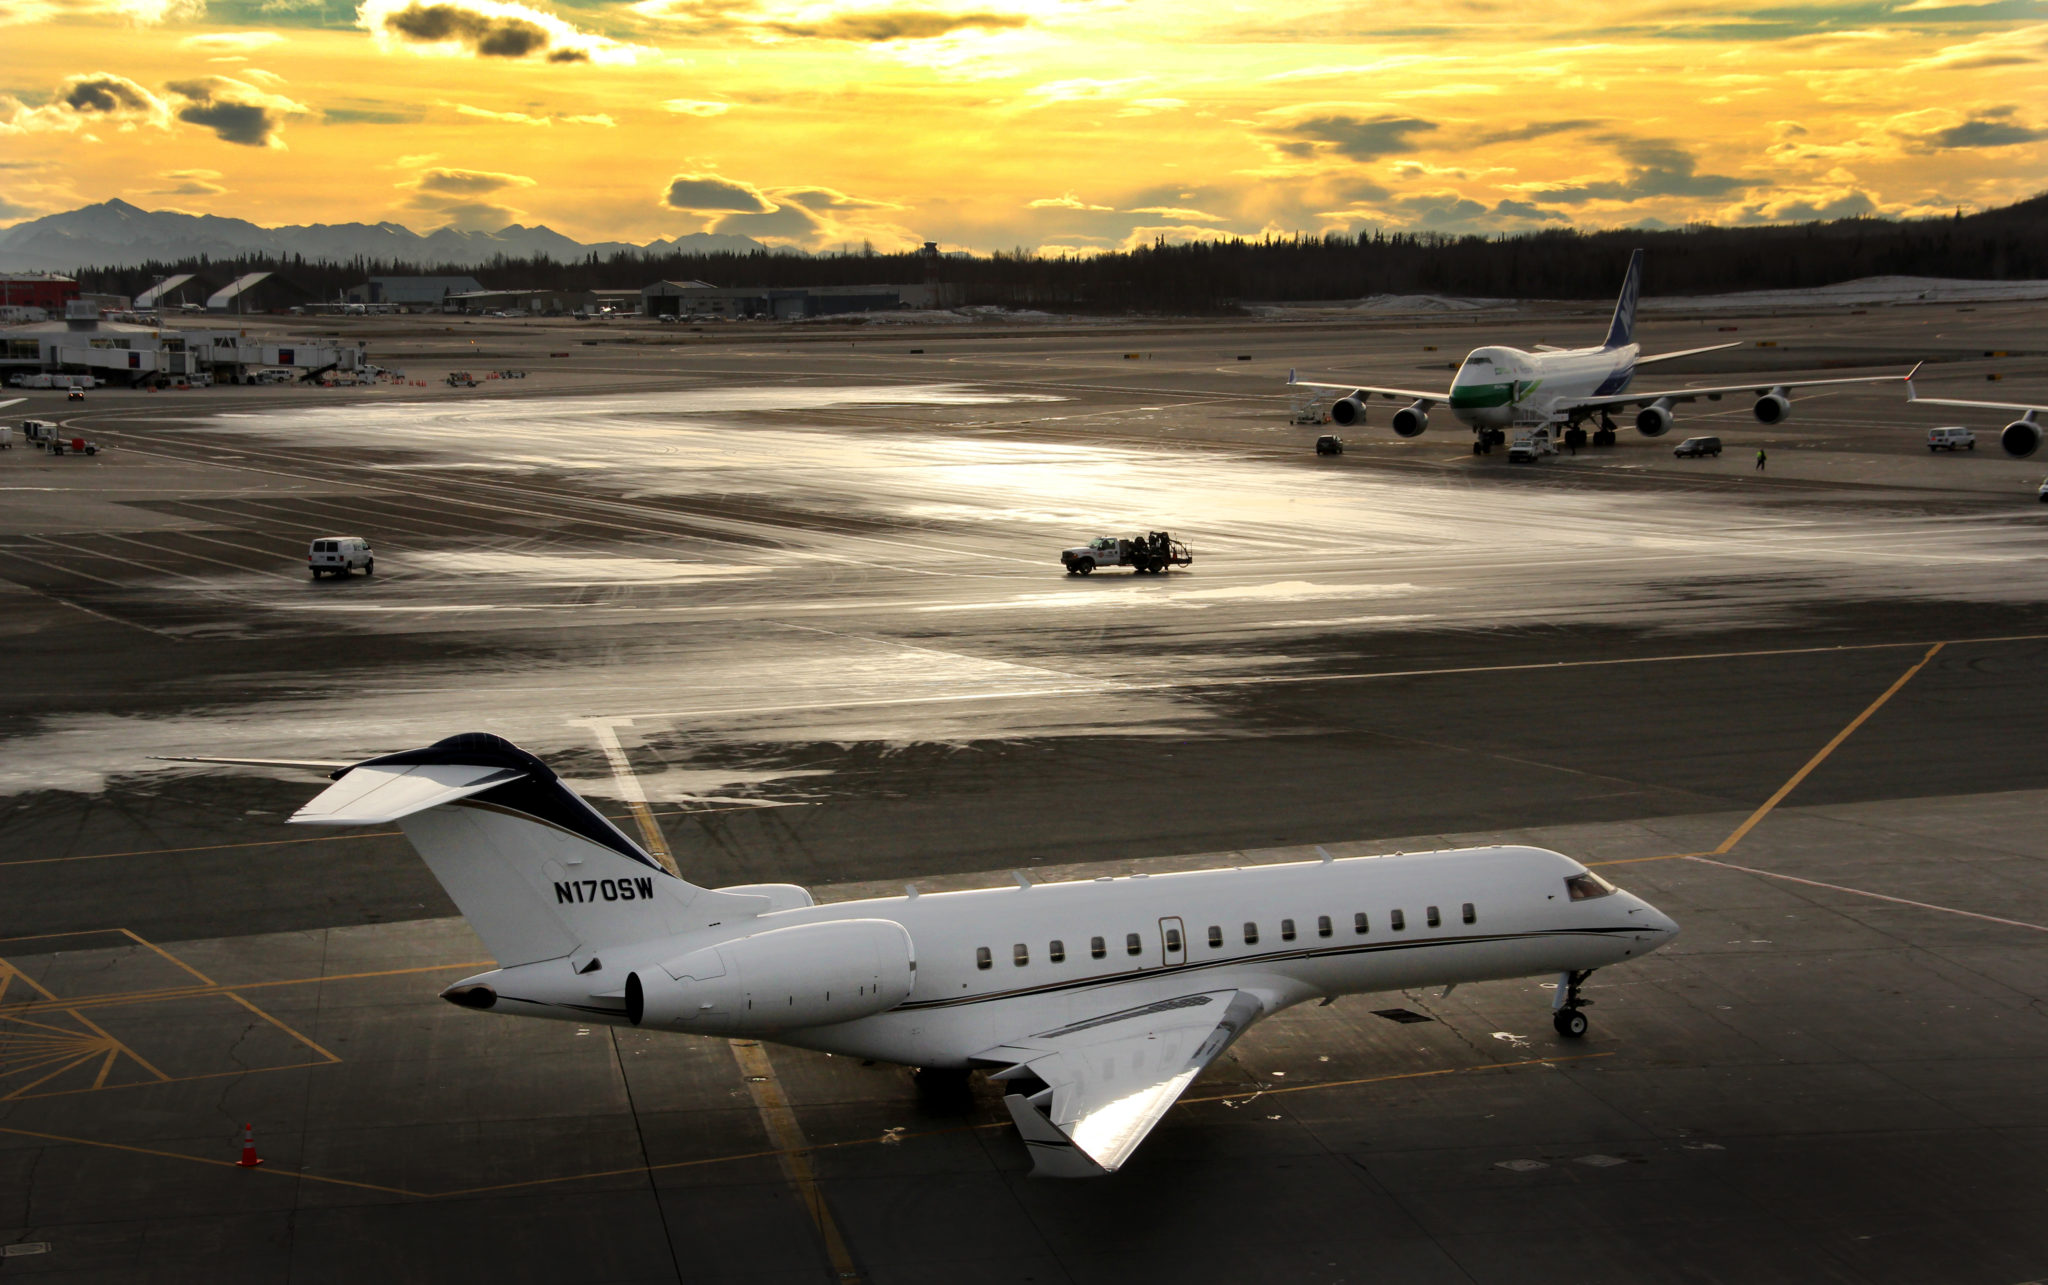 Sunset on an Executive Jet | Alaskafoto - Top Alaska aircraft photography & aircraft portraits